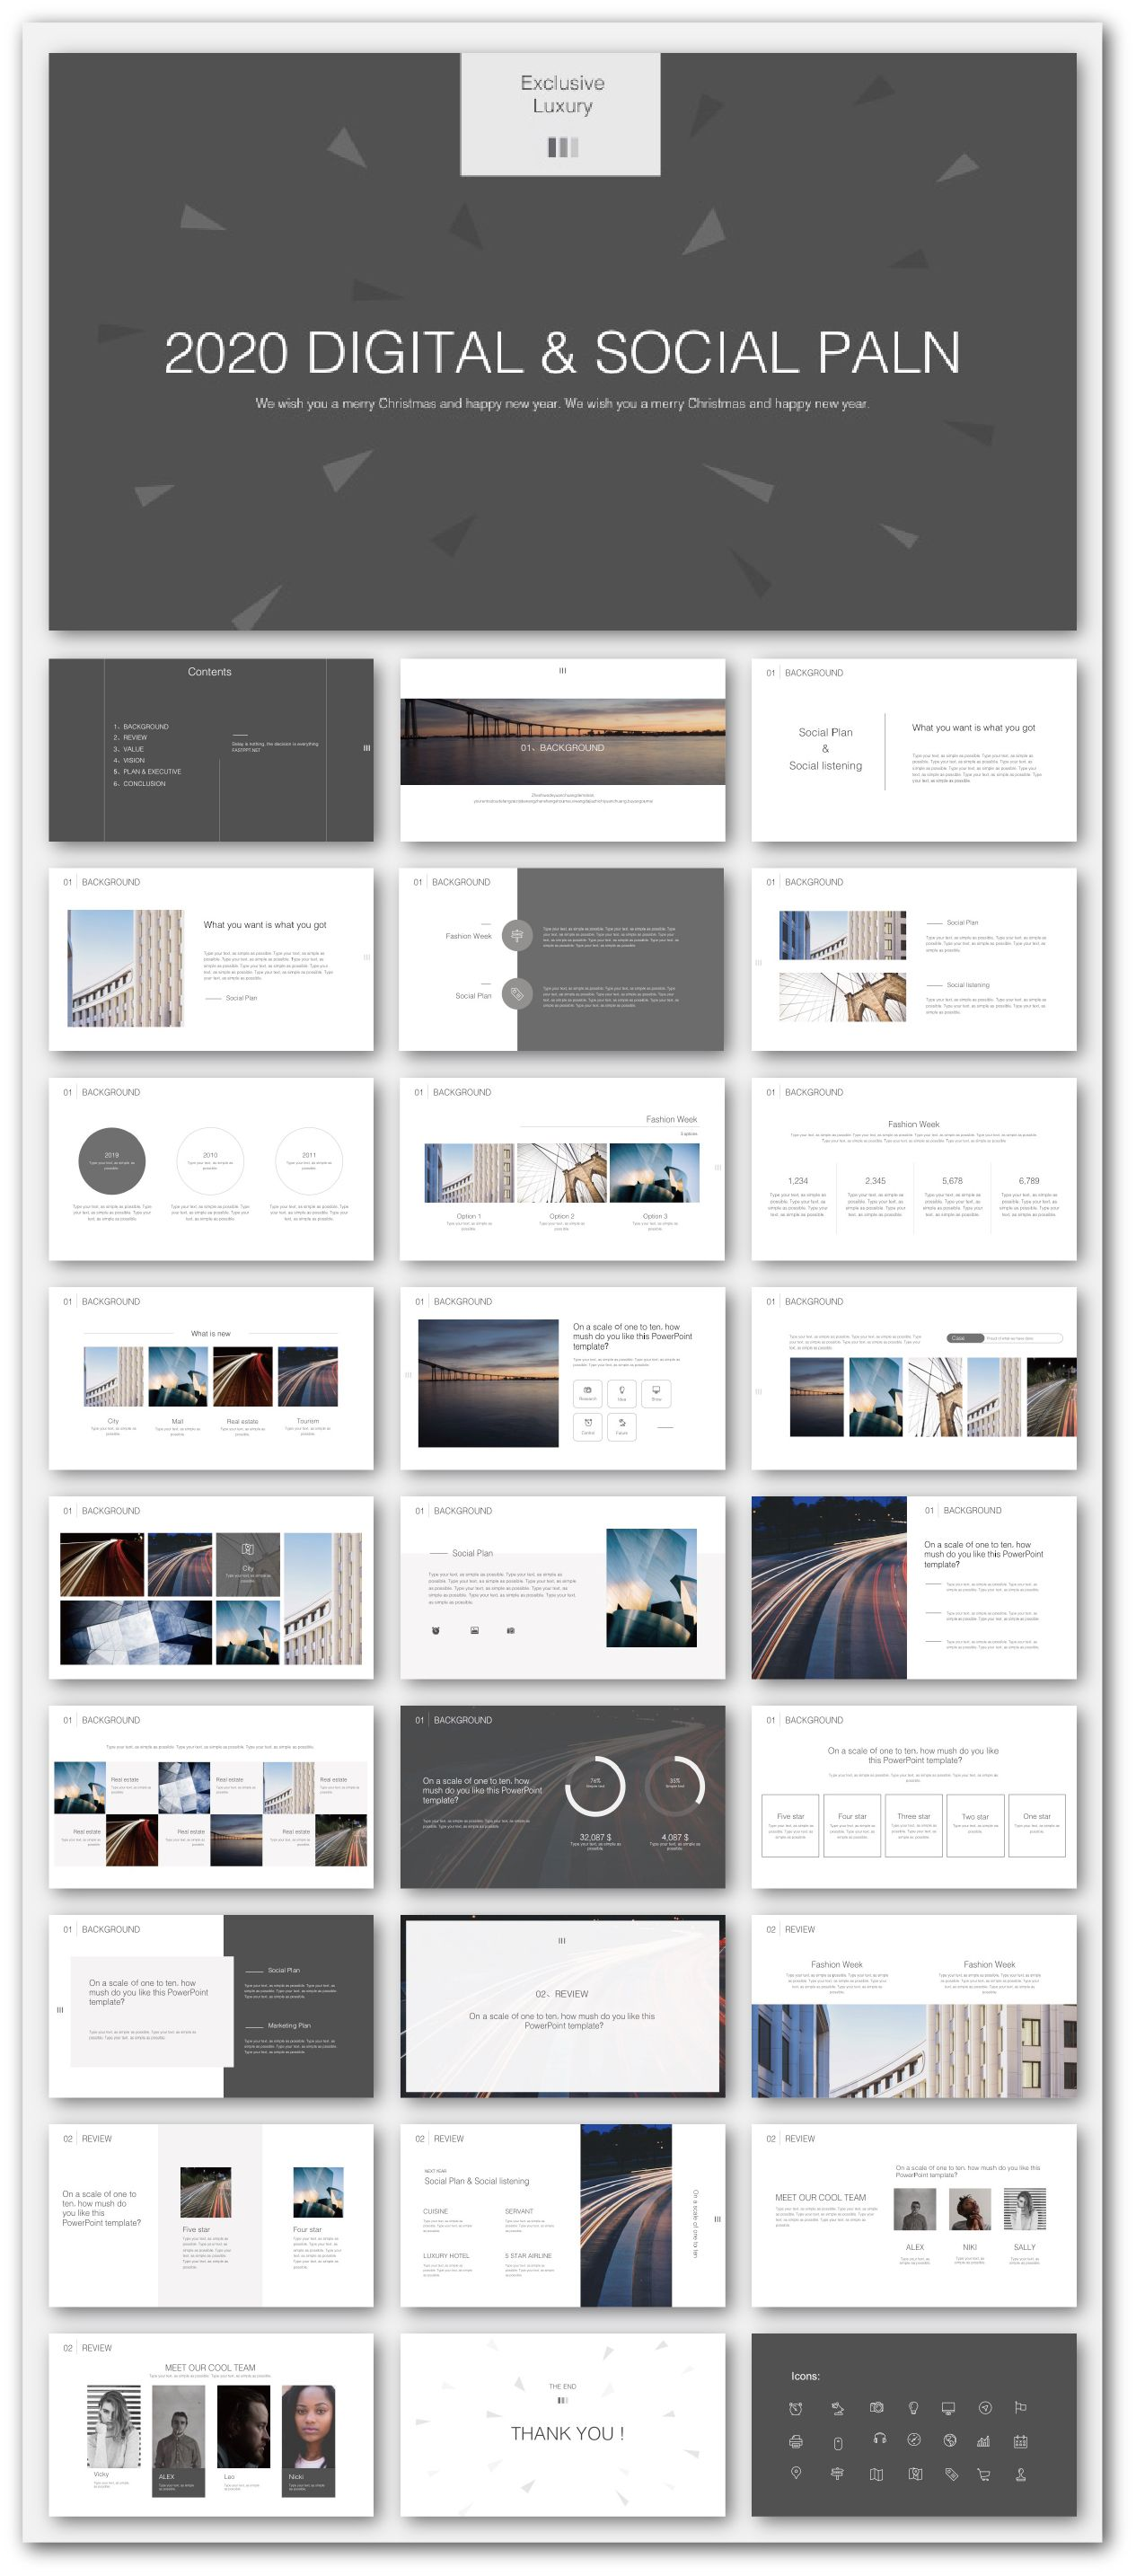 Business Social Plan Presentation Template Original And High Quality Powerpoint Templates Powerpoint Presentation Design Powerpoint Design Templates Presentation Design Template